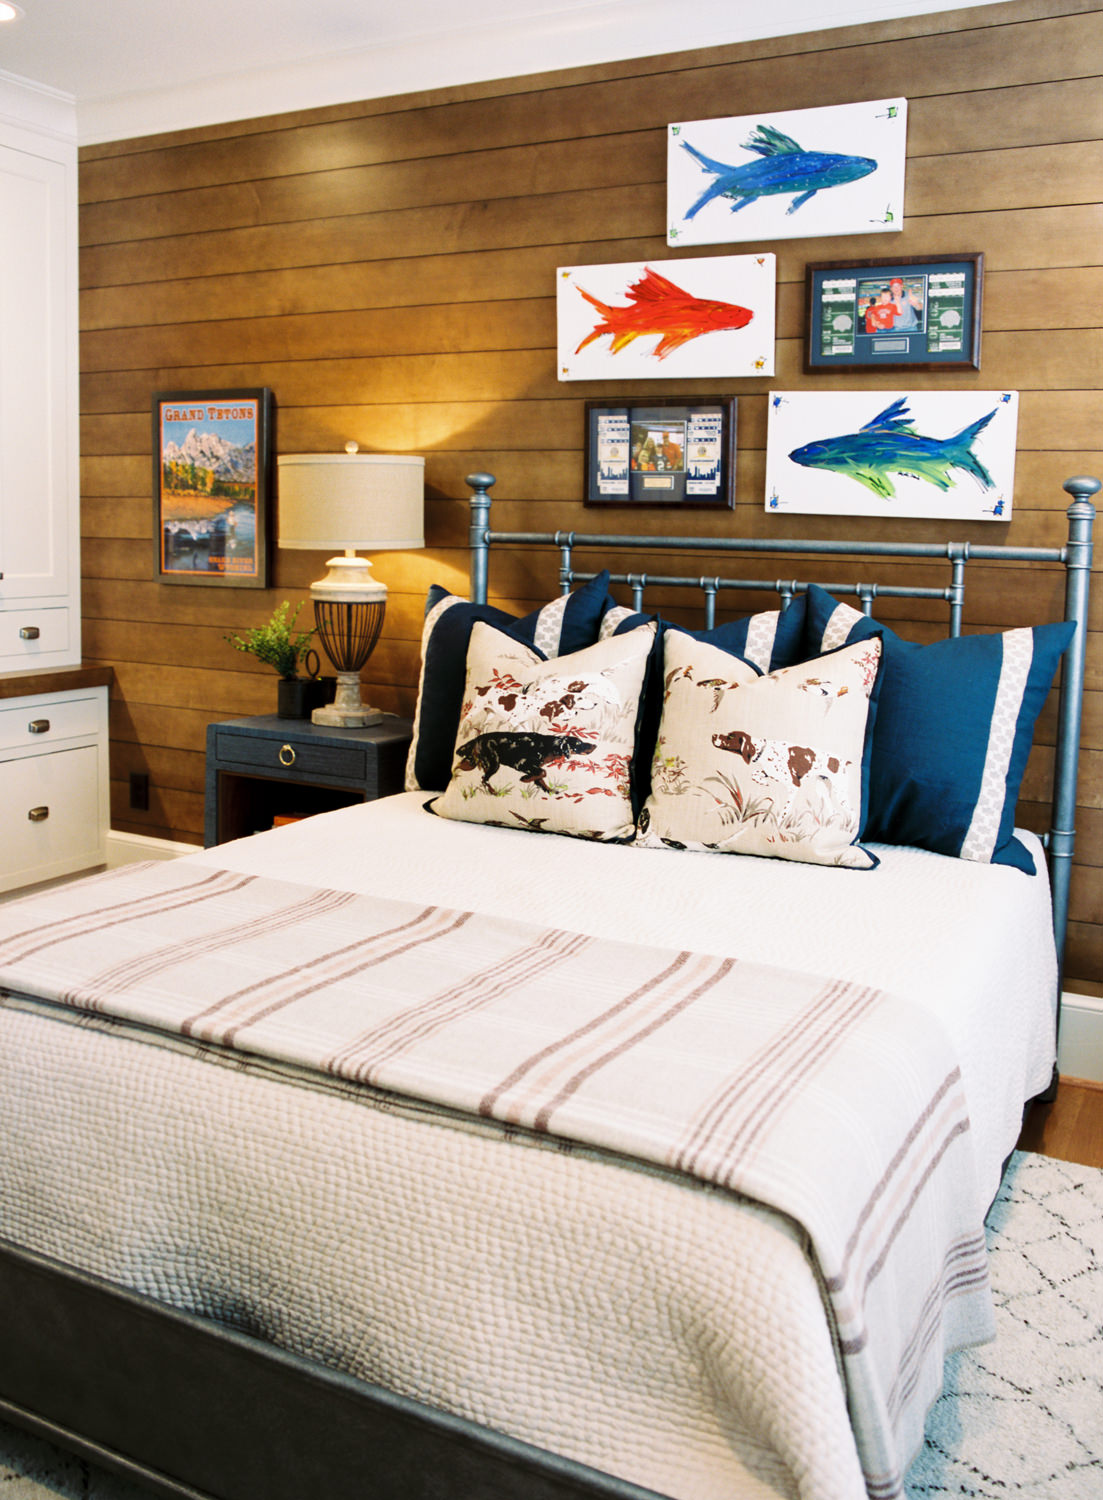 cottrell_photography_interiors-014